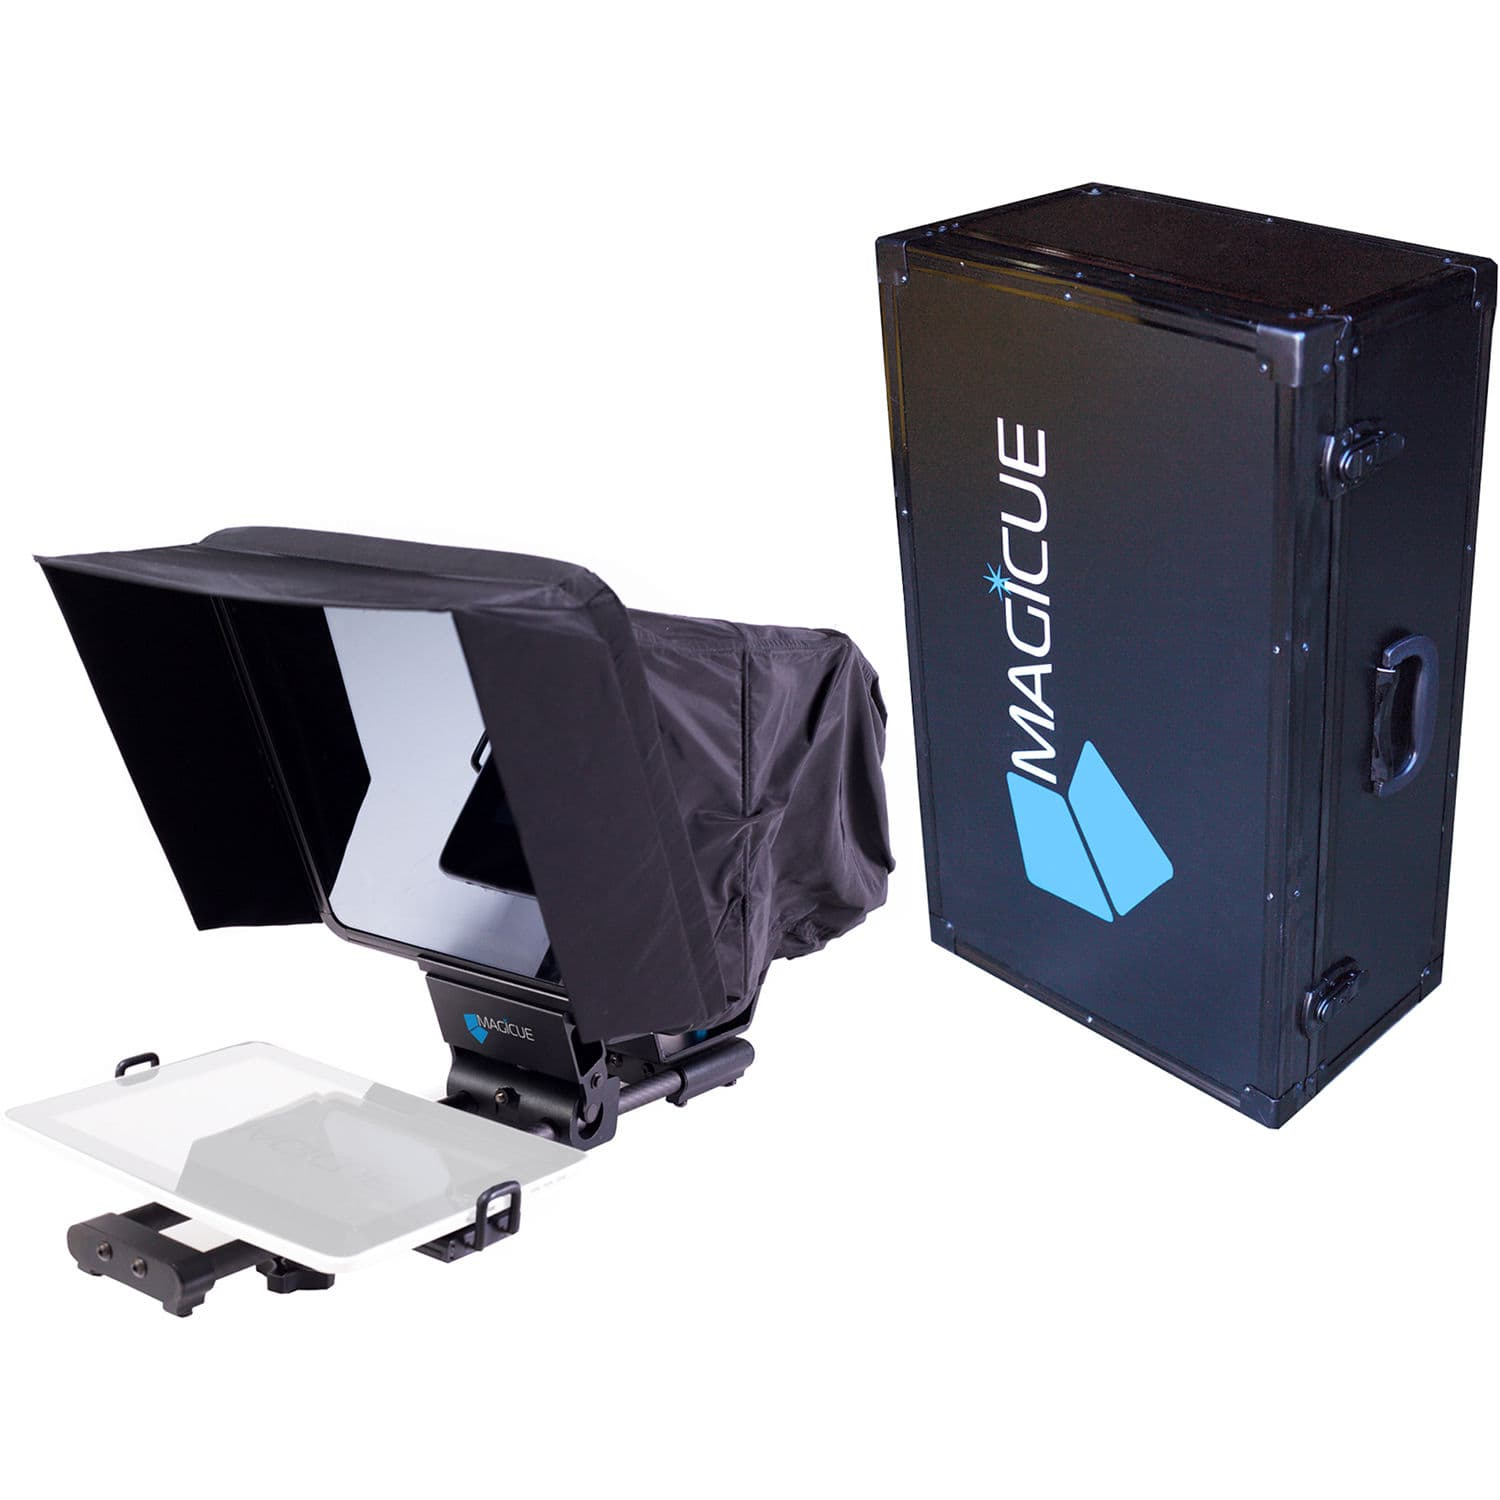 MagiCue  Mobile Teleprompter Kit w/ Aluminum Hard Case $199 @ B&H Photo w/ Free Shipping